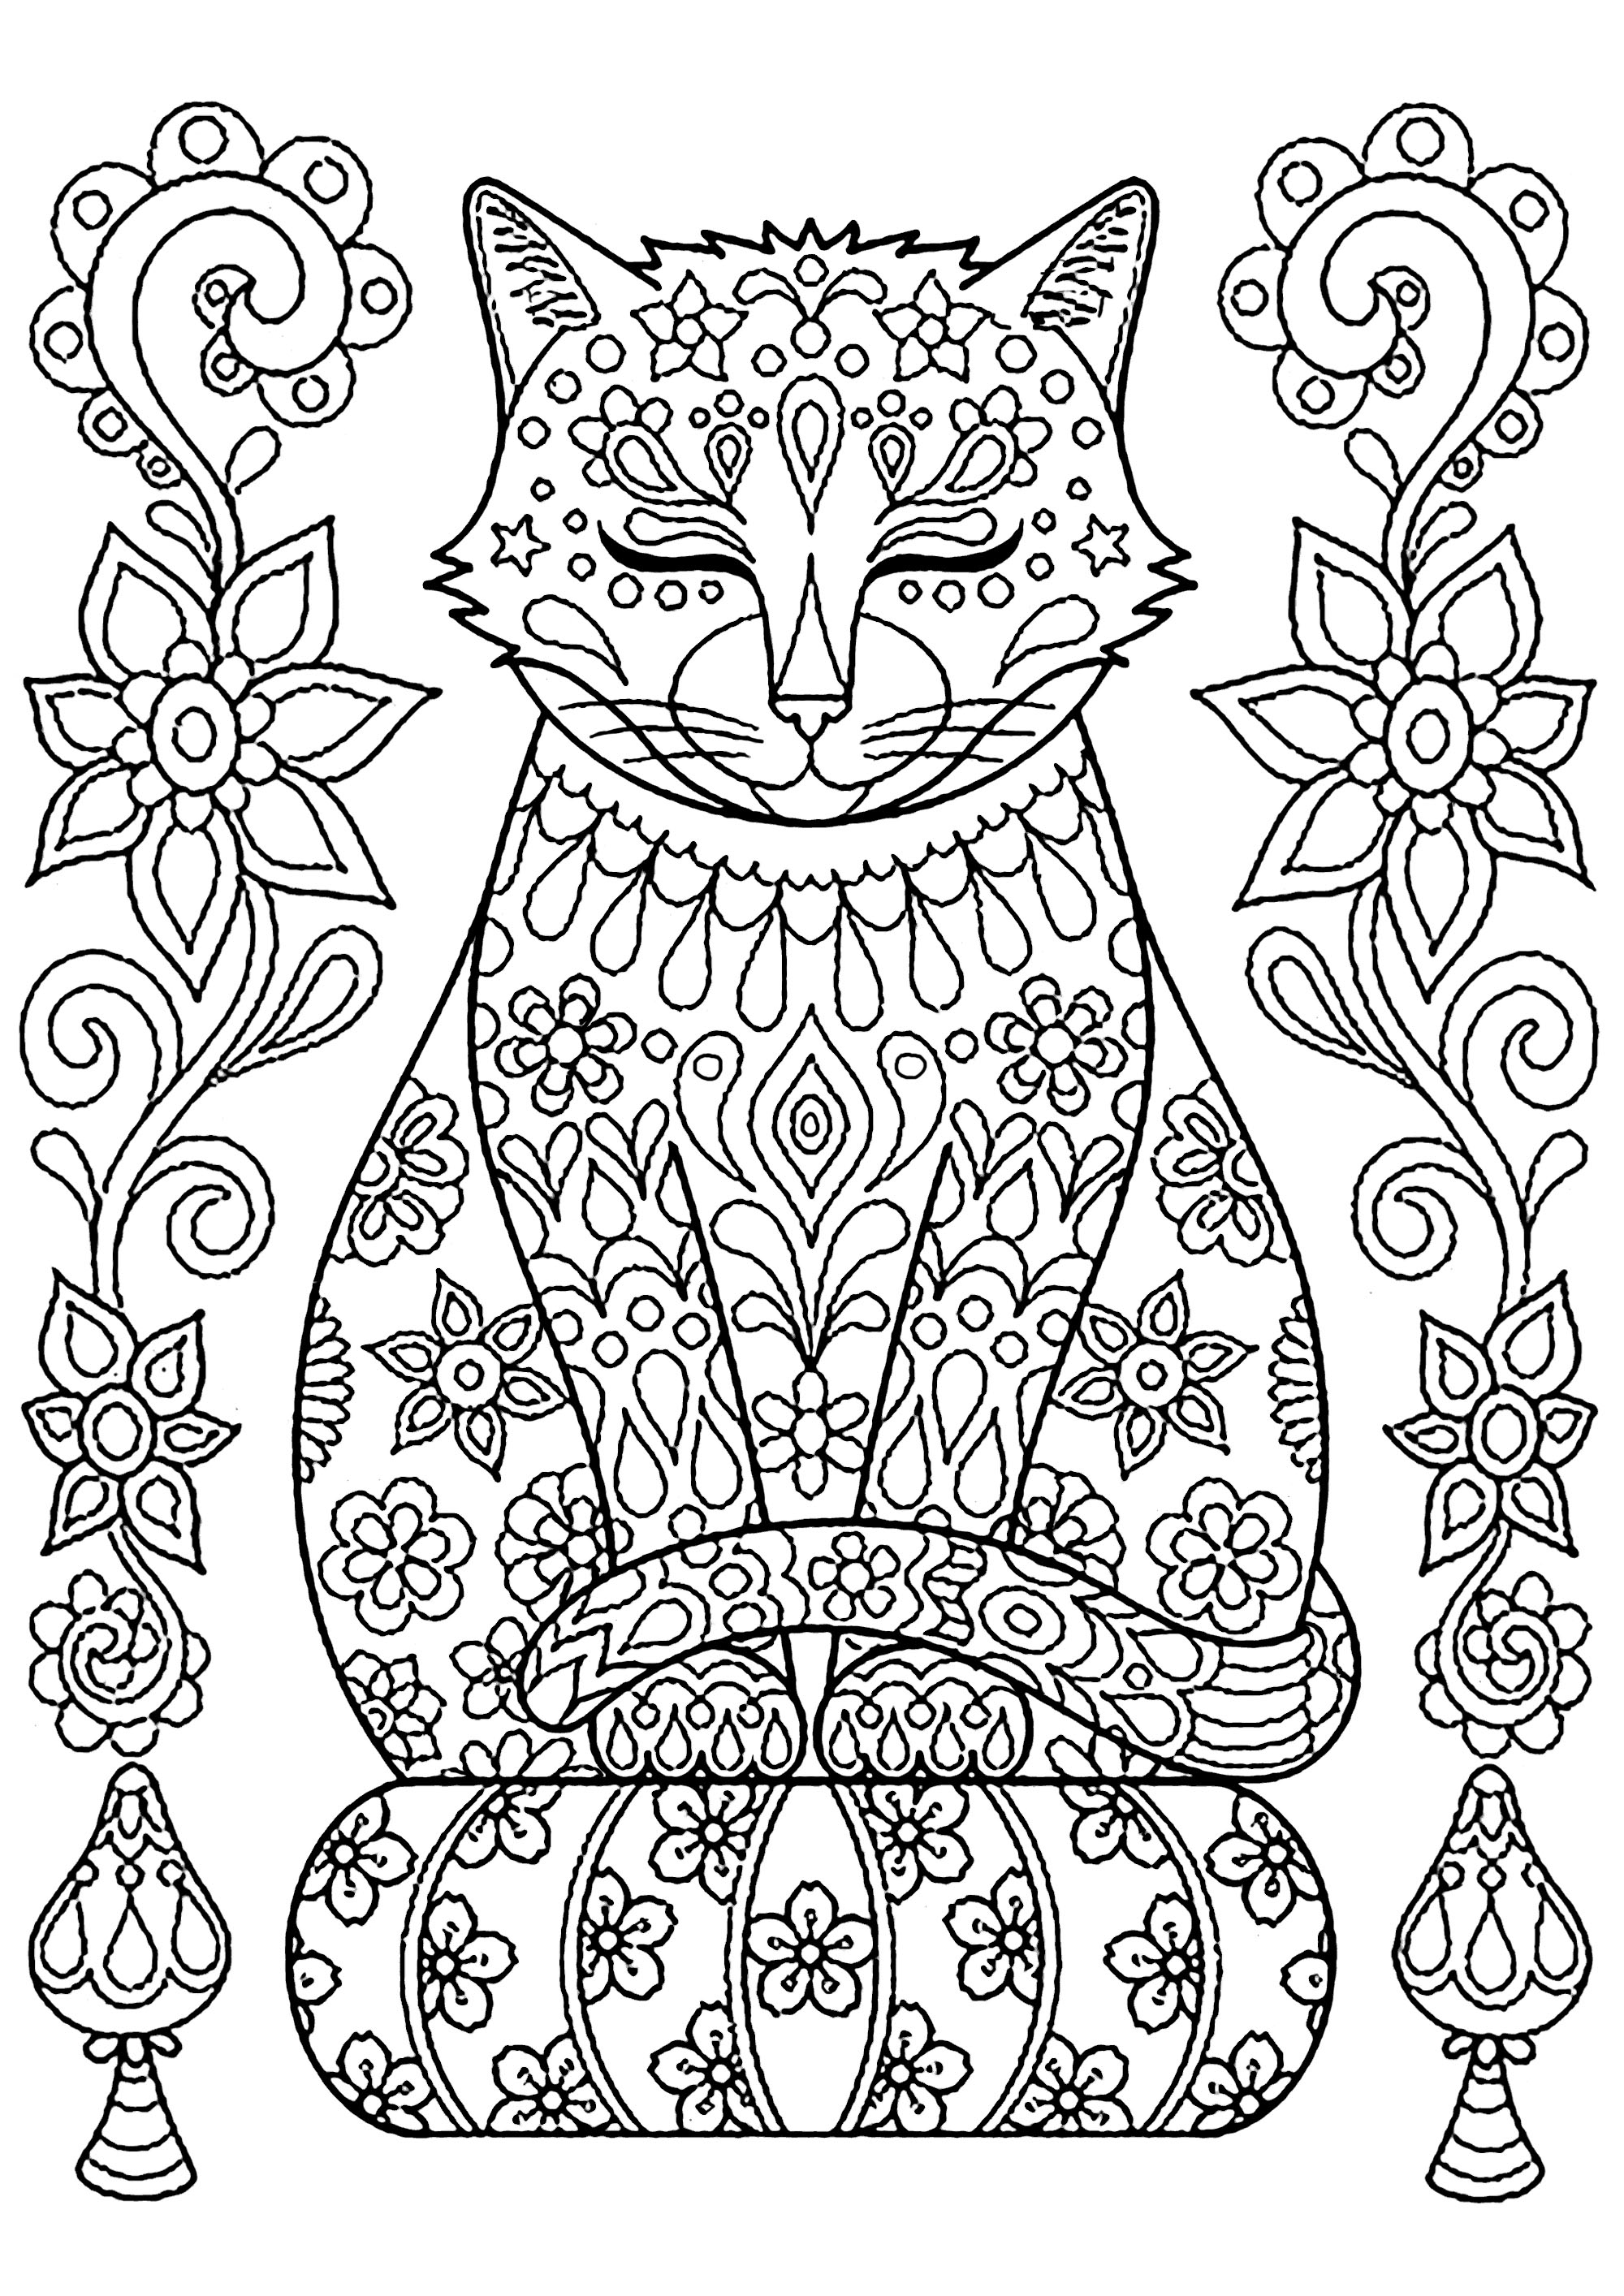 Cute Cat On Pillow With Flowers - Cats Adult Coloring Pages pour Dessin De Chat Simple